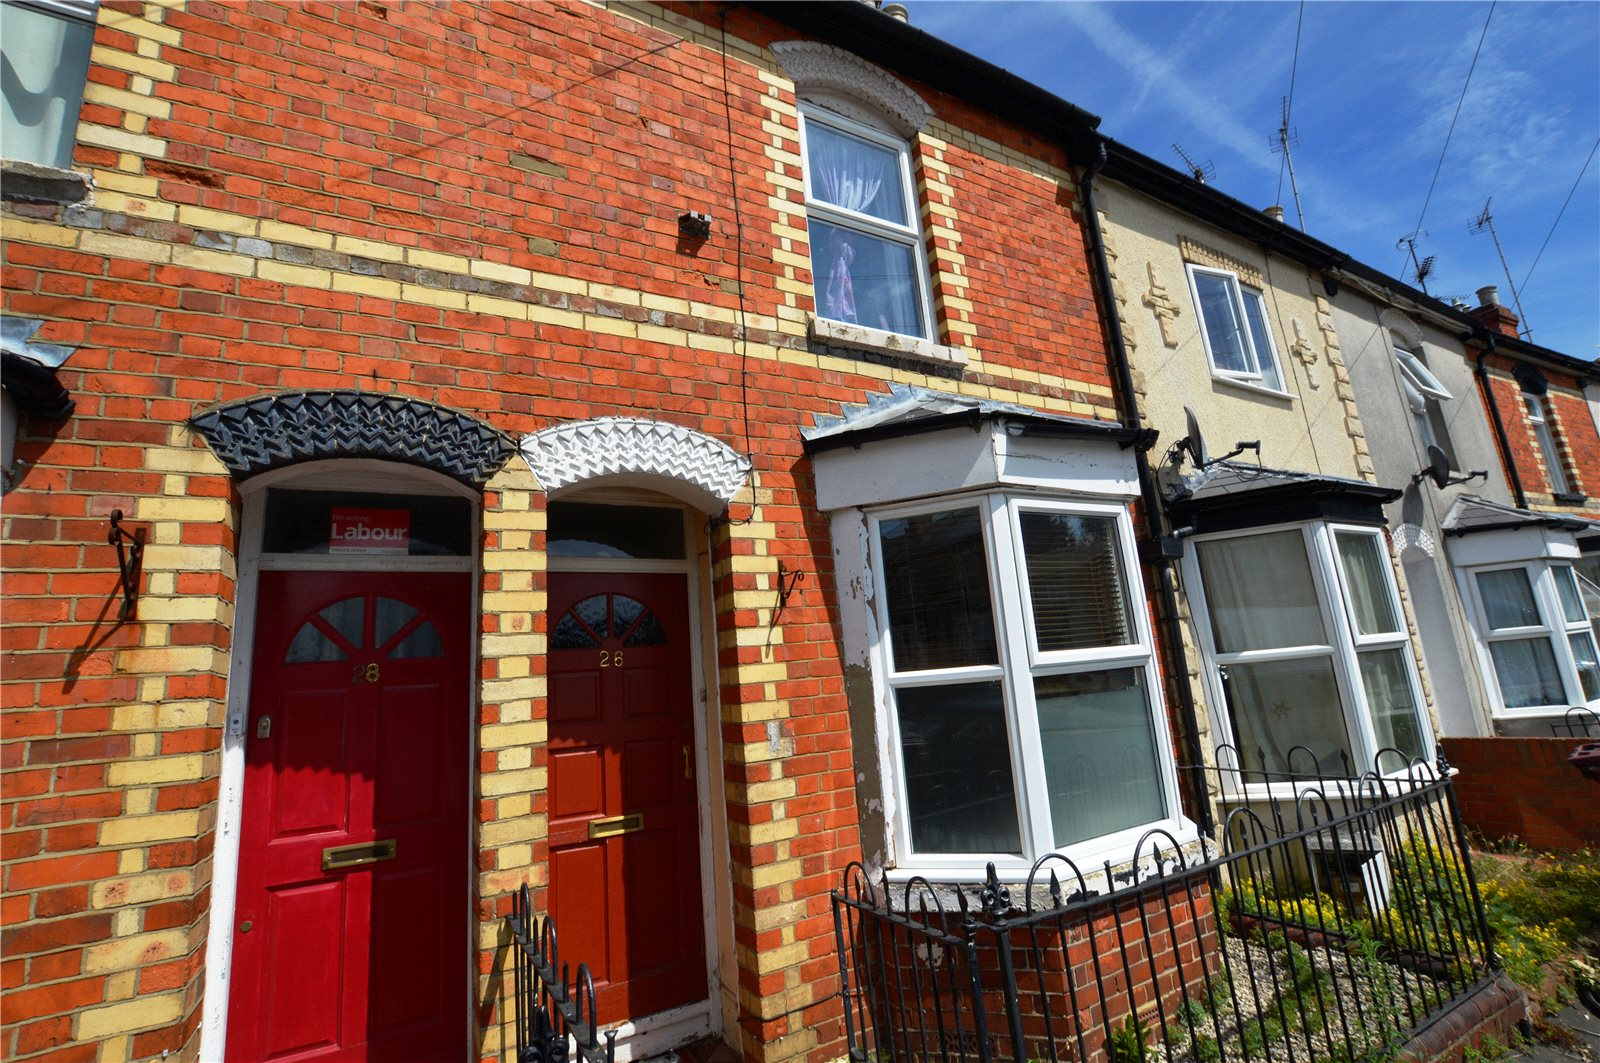 2 Bedrooms Terraced House for sale in Waldeck Street, Reading, Berkshire, RG1